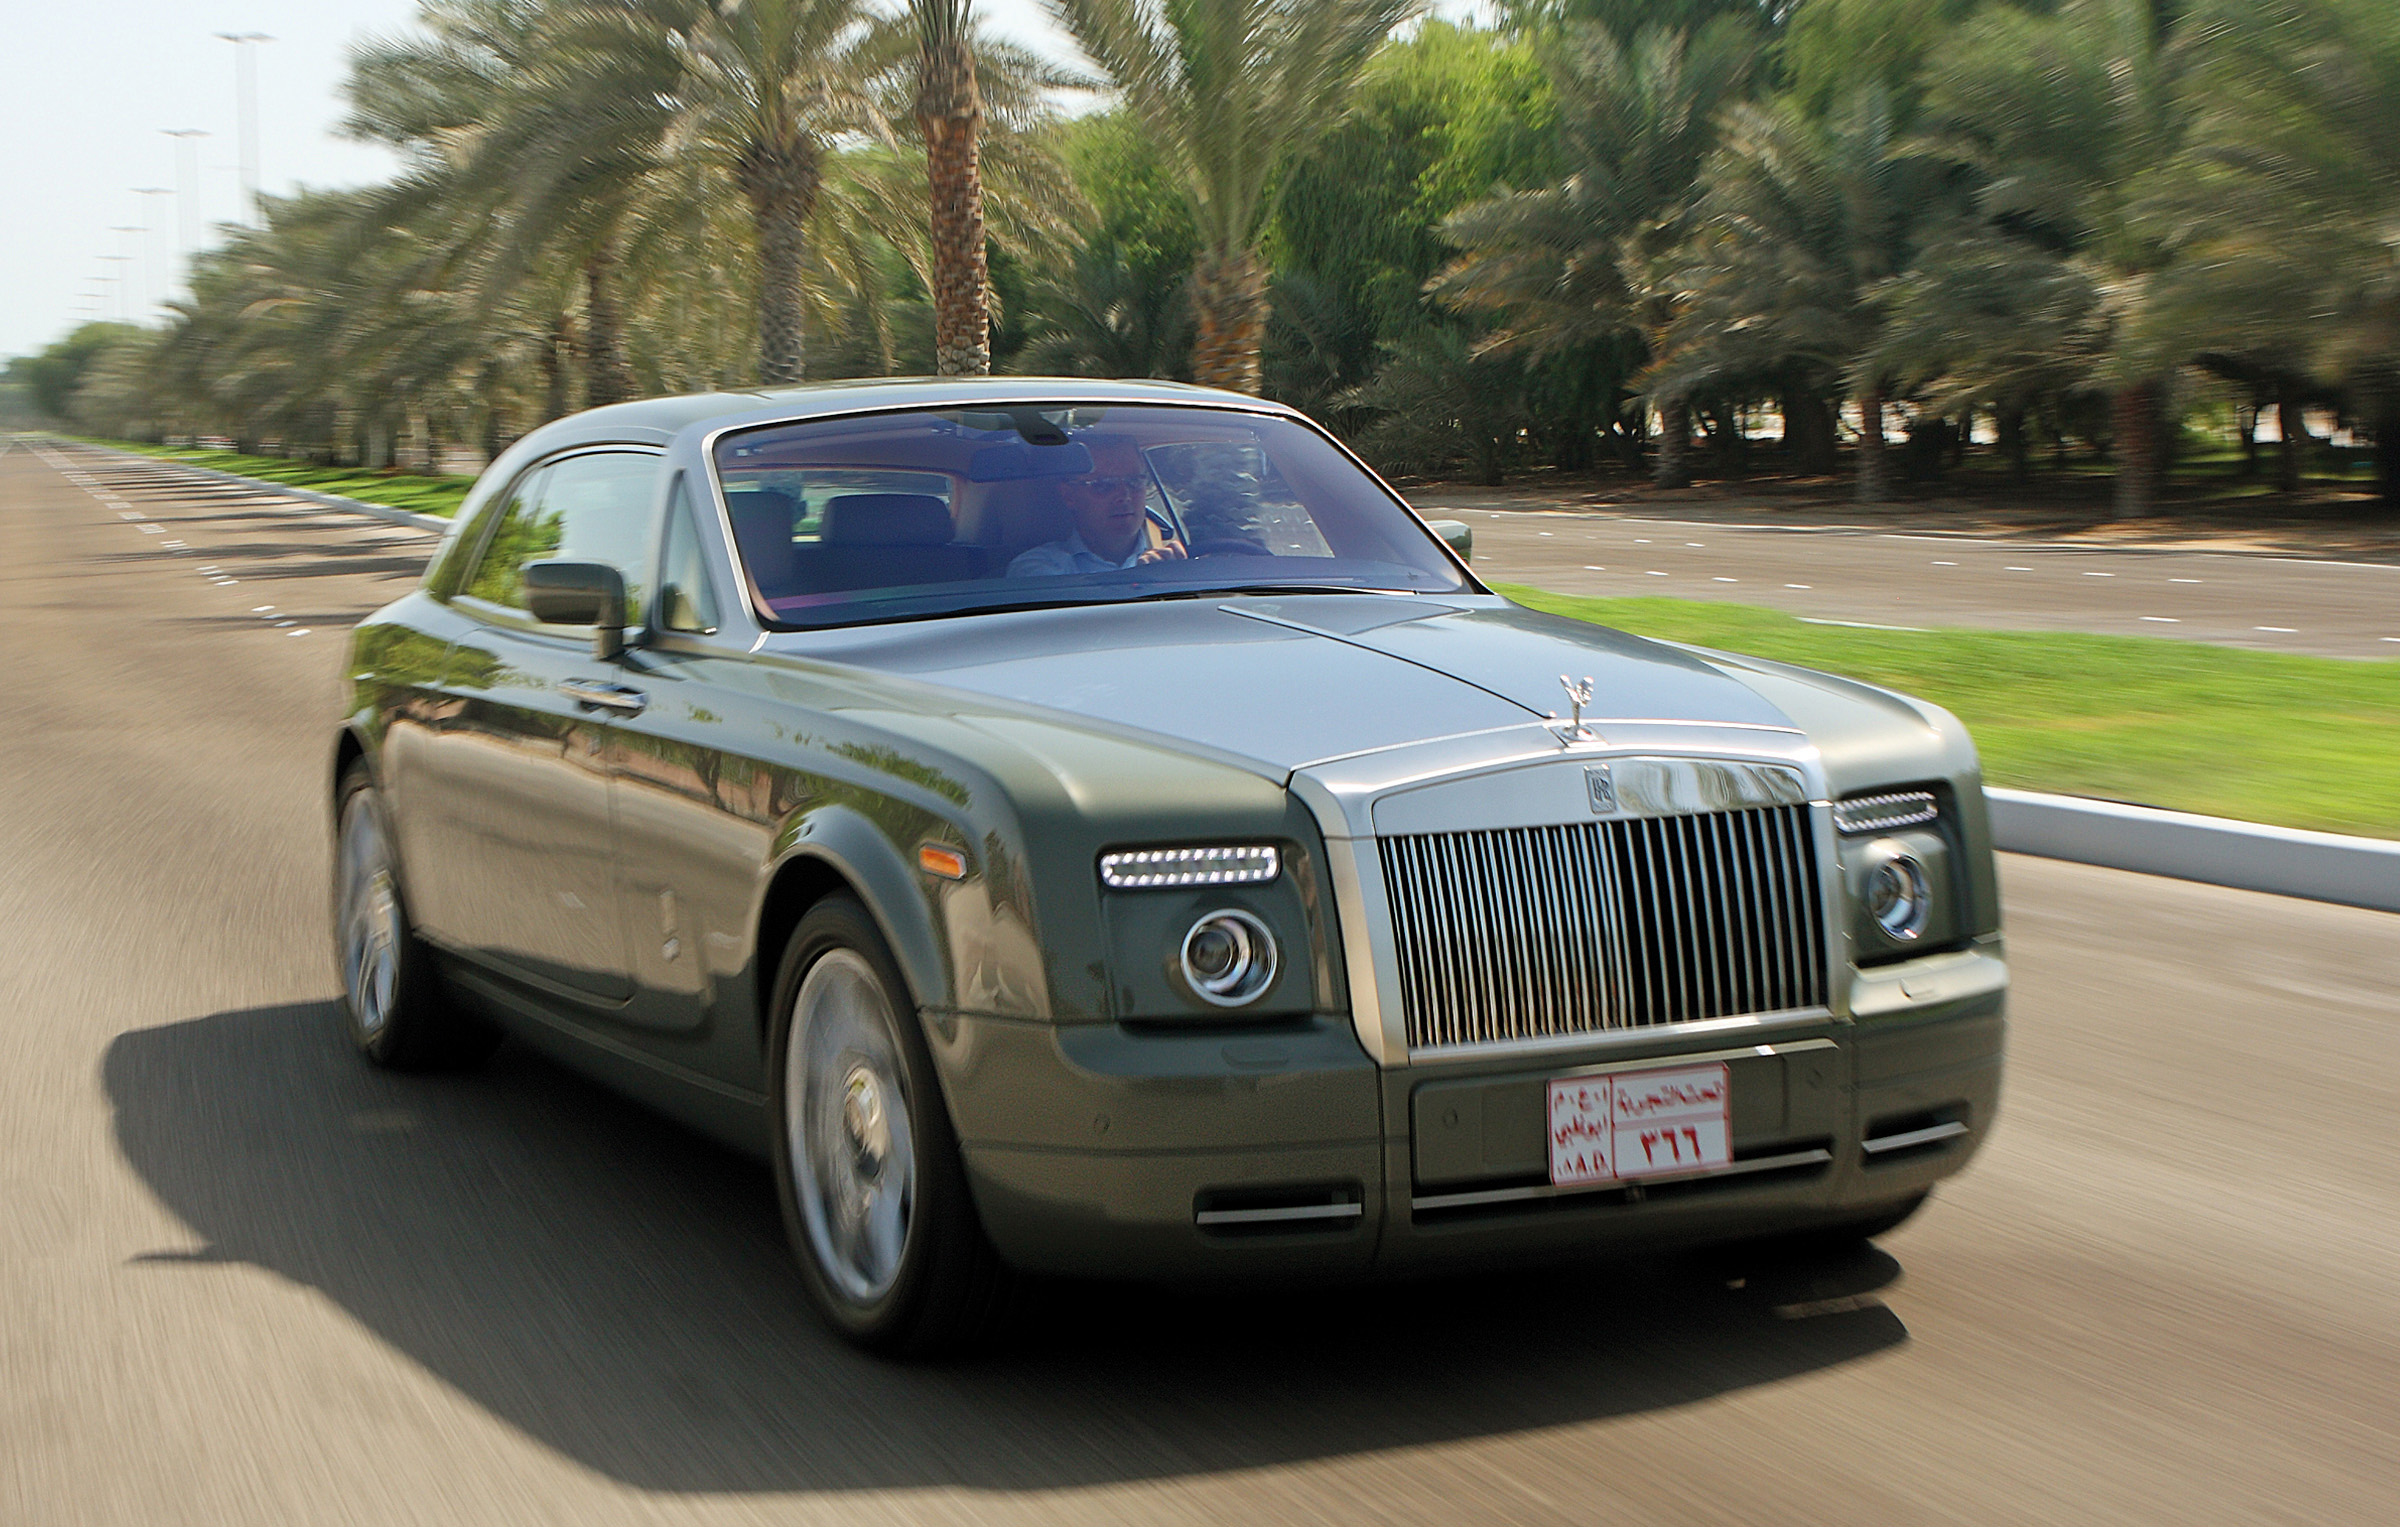 2008 Rolls royce Phantom #19